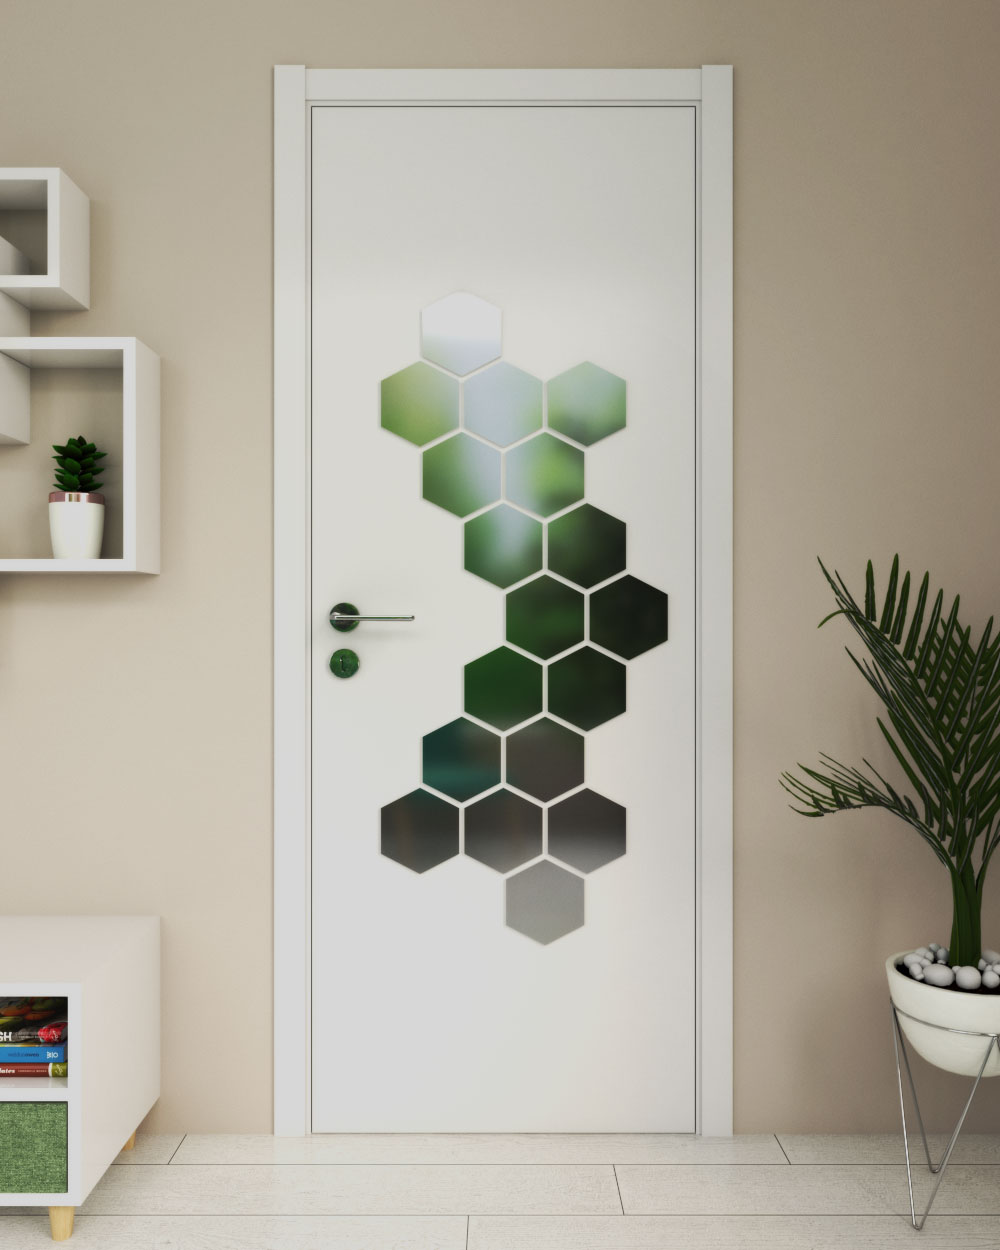 15 Creative Bedroom Door Ideas Cool Bedroom Door Decorations With Images Roomdsign Com